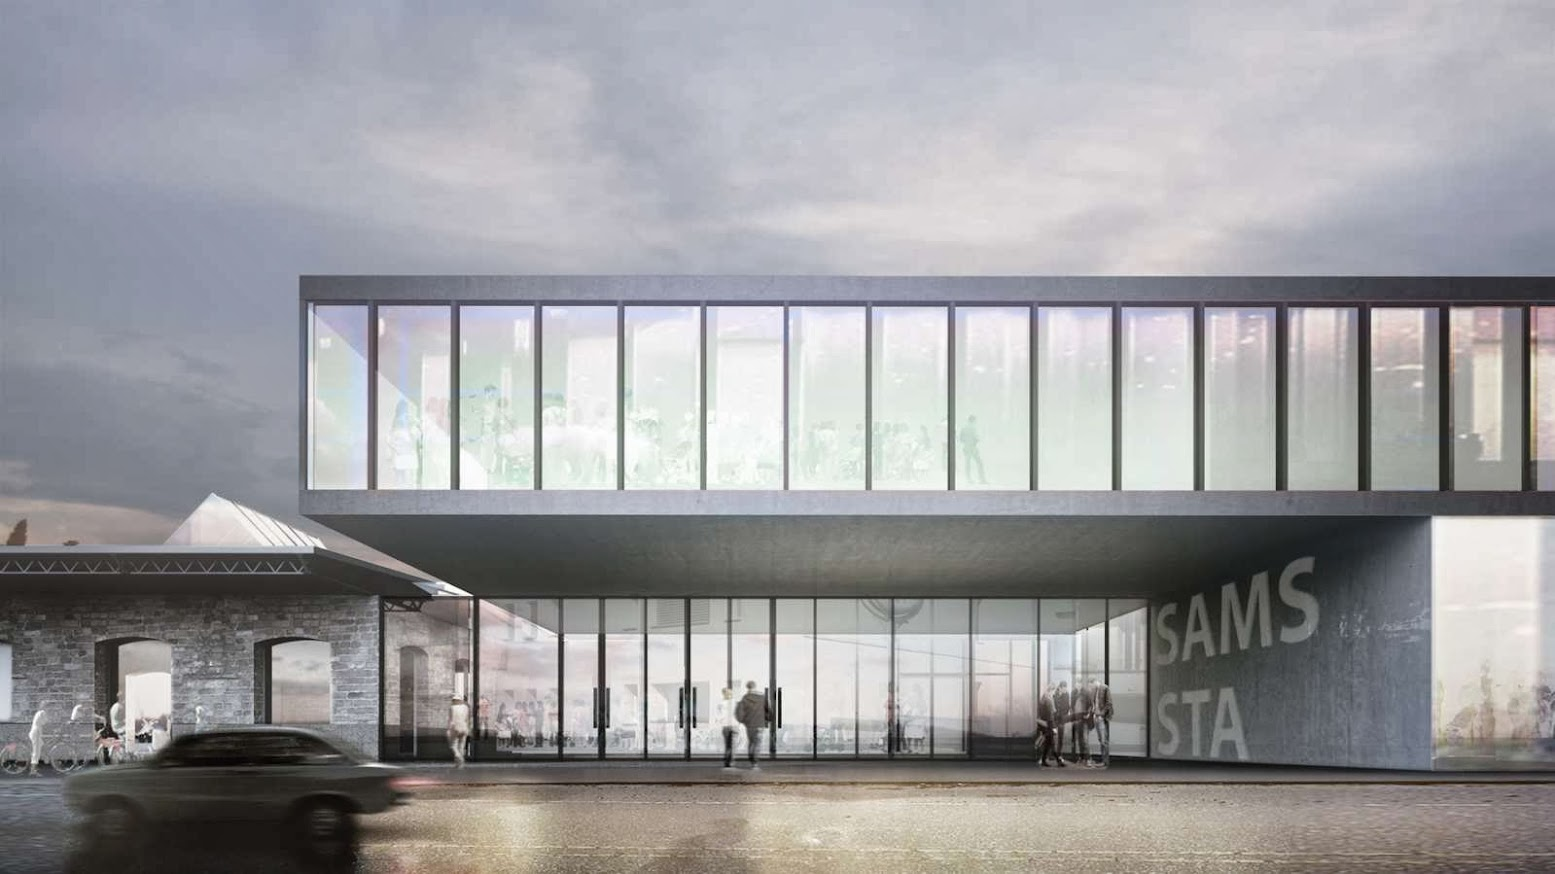 Chiasso, Svizzera: [ANTONIO CITTERIO PATRICIA VIEL AND C+S ARCHITECTS WIN SAMS-STA COMPETITION]